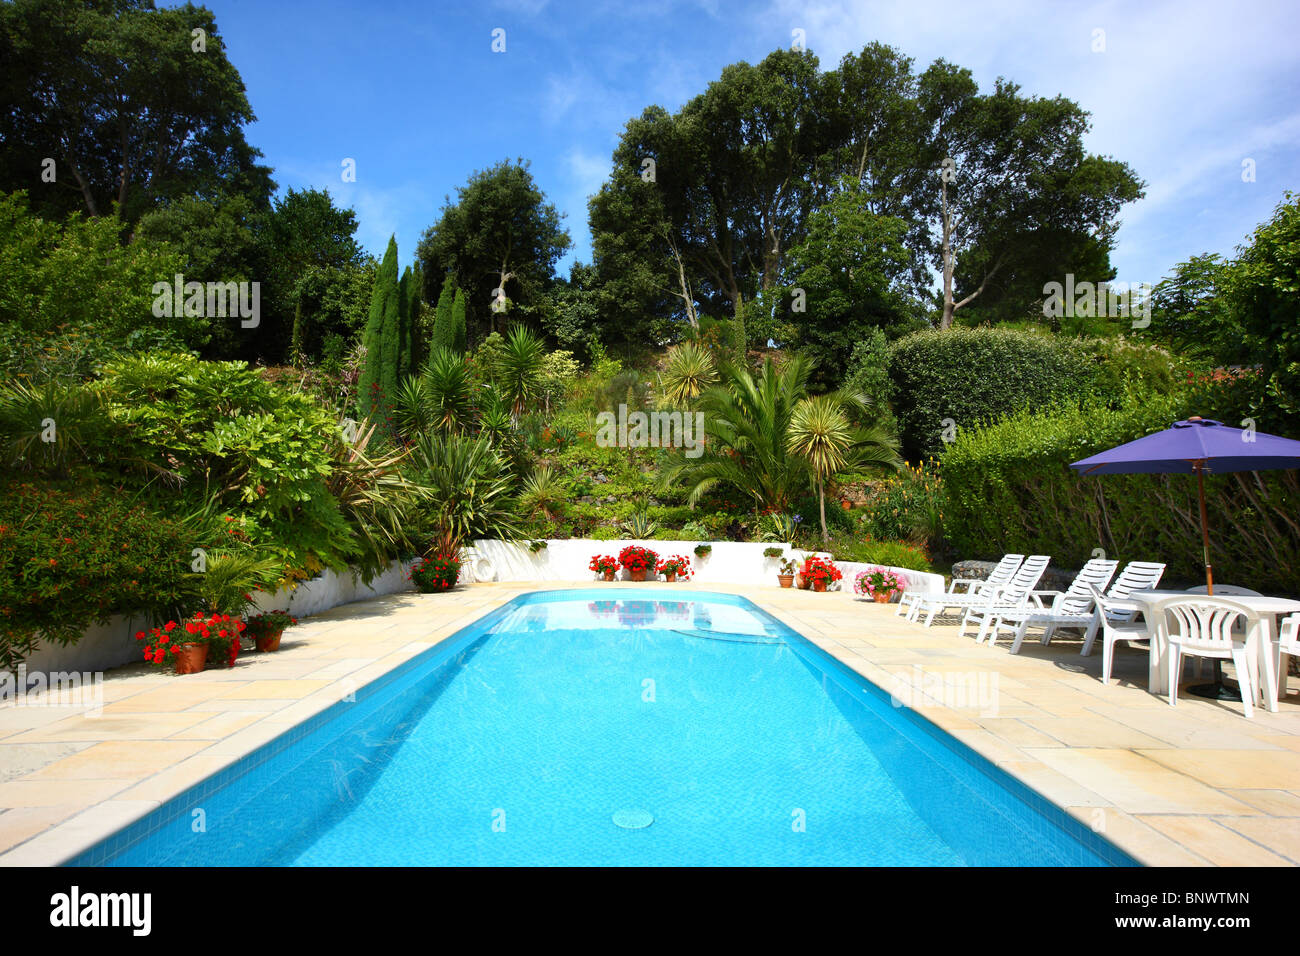 mille fleurs garden and vacation apartments in a huge garden with